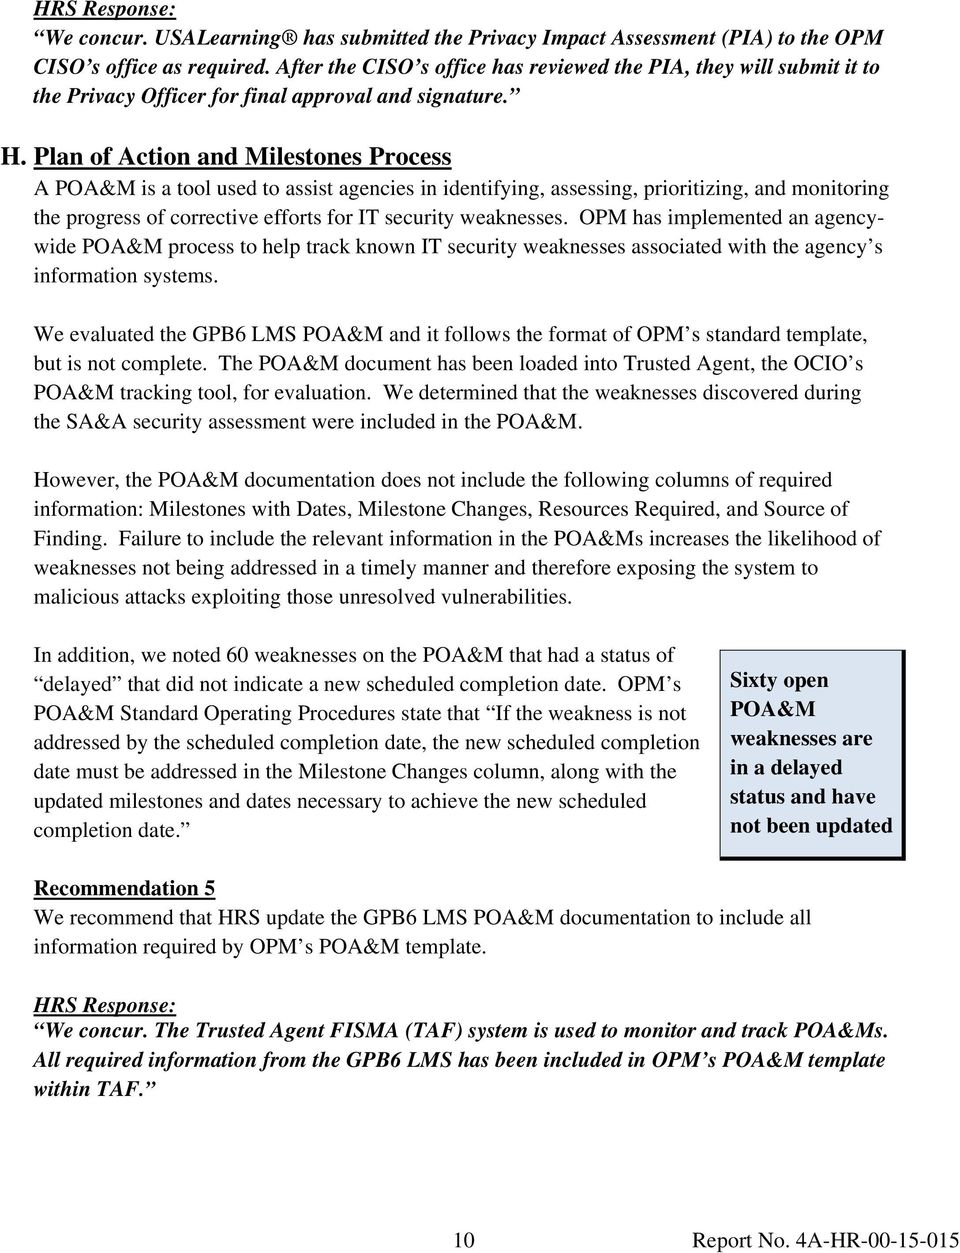 Plan of Action and Milestones Process A POA&M is a tool used to assist agencies in identifying, assessing, prioritizing, and monitoring the progress of corrective efforts for IT security weaknesses.